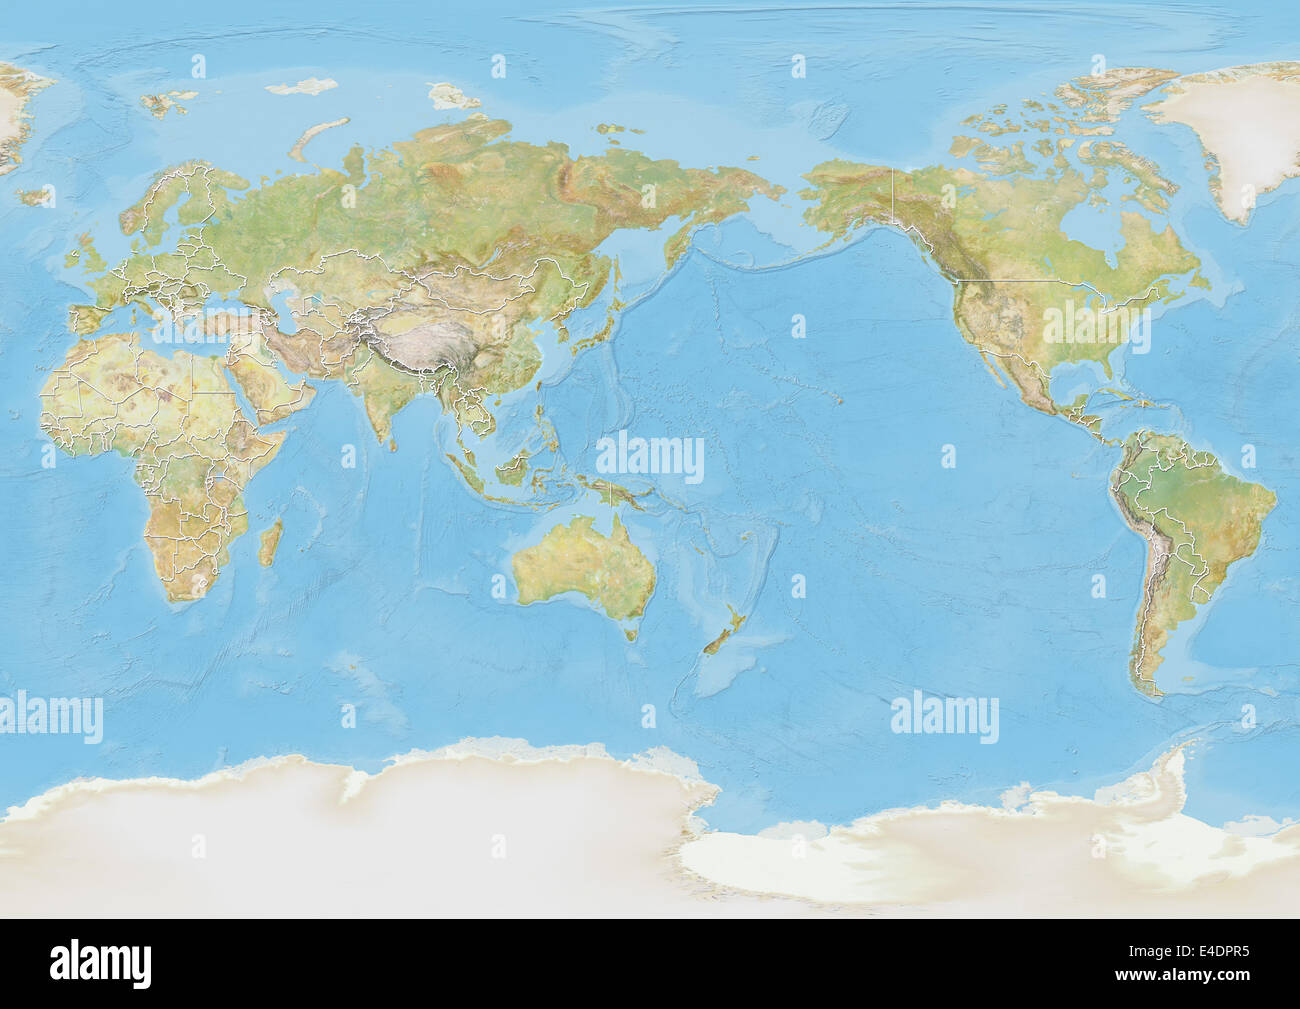 World map centred on pacific ocean with country borders stock photo world map centred on pacific ocean with country borders gumiabroncs Choice Image